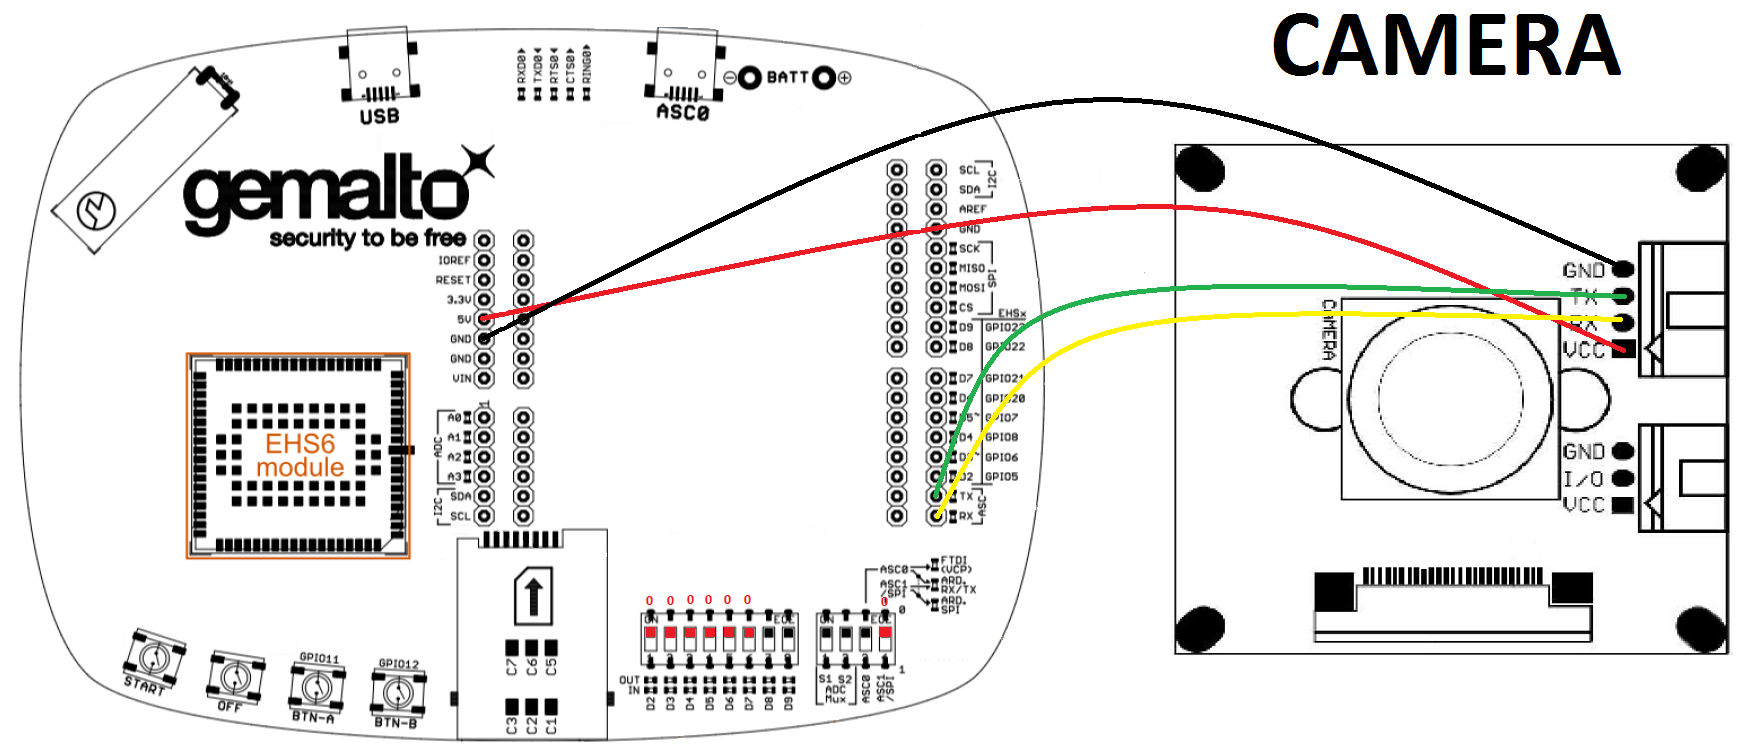 Connecting Concept Board with serial camera JPEG